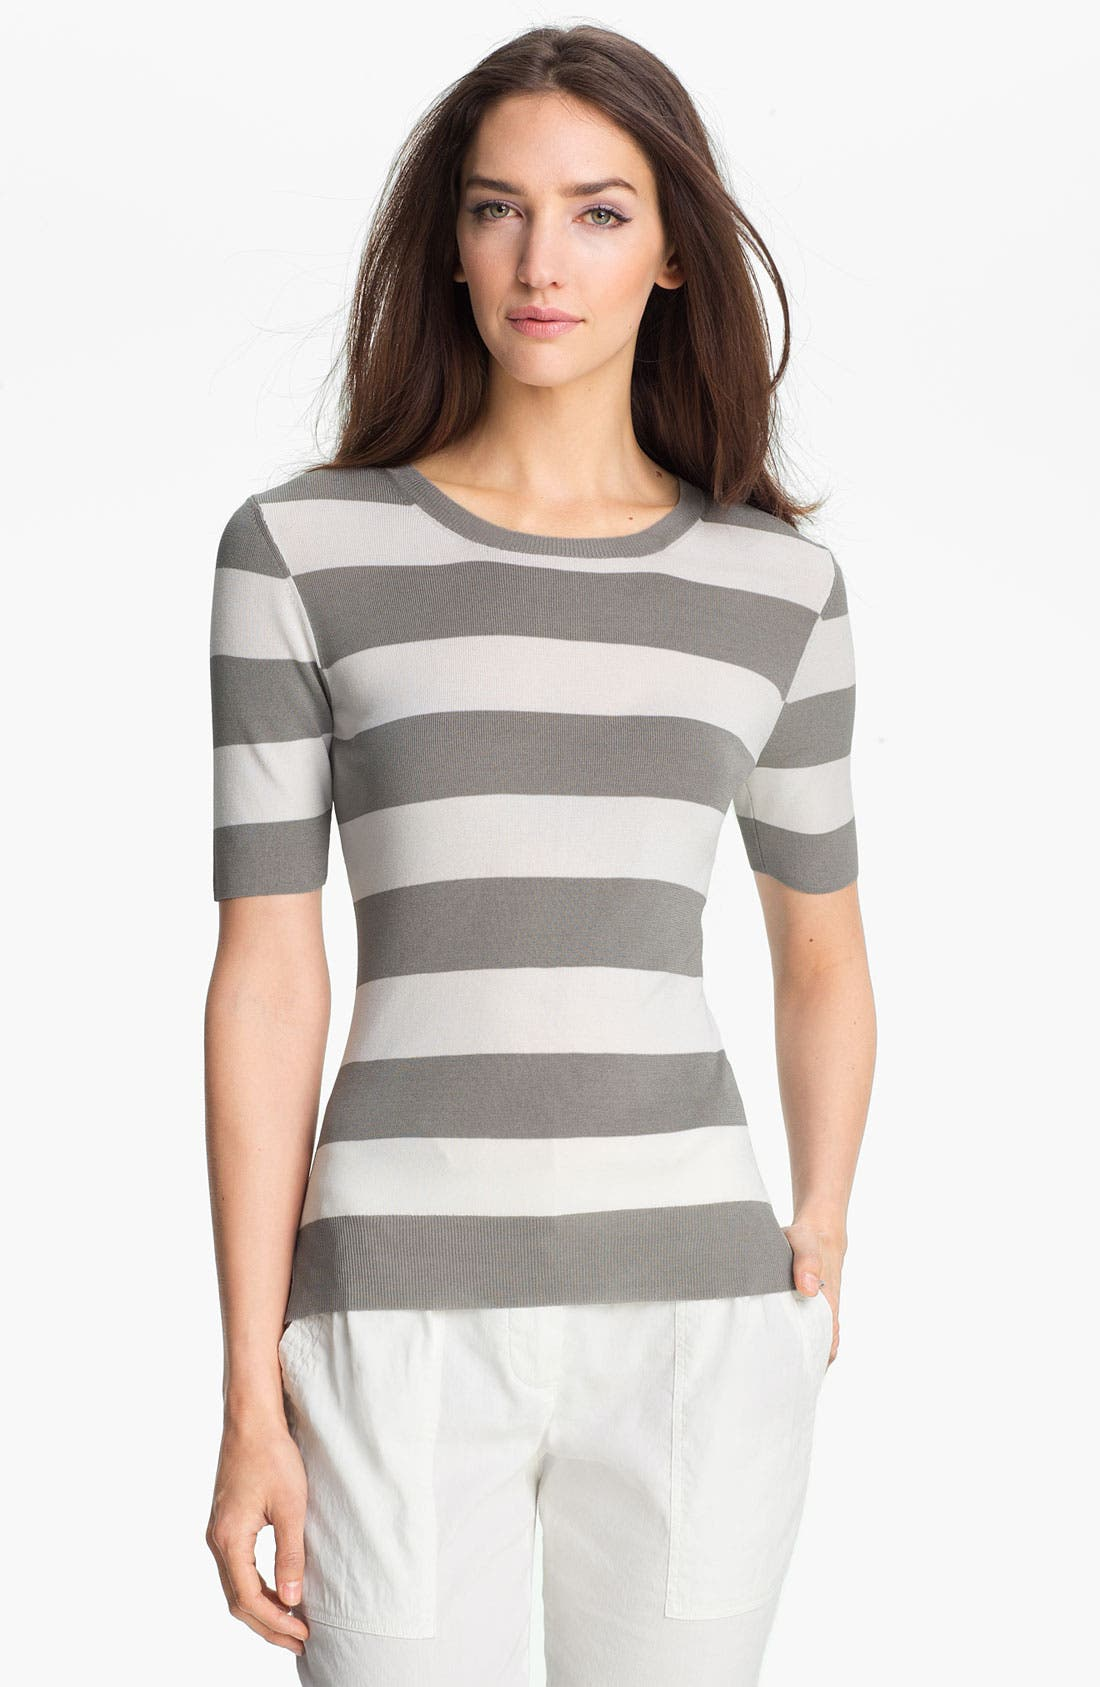 Alternate Image 1 Selected - Theory 'Symon S.' Stripe Sweater